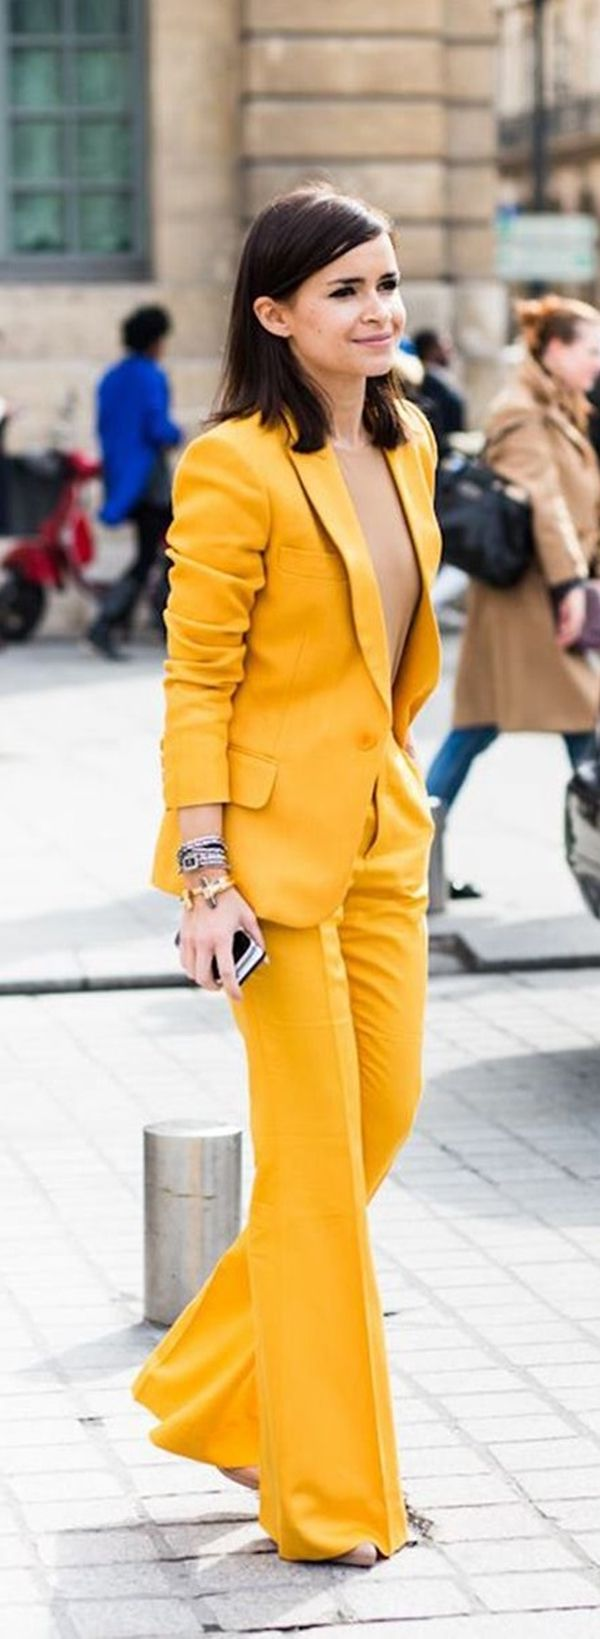 36 Beautiful Women S Suits For Work 2021 Fashiontrendwalk Com